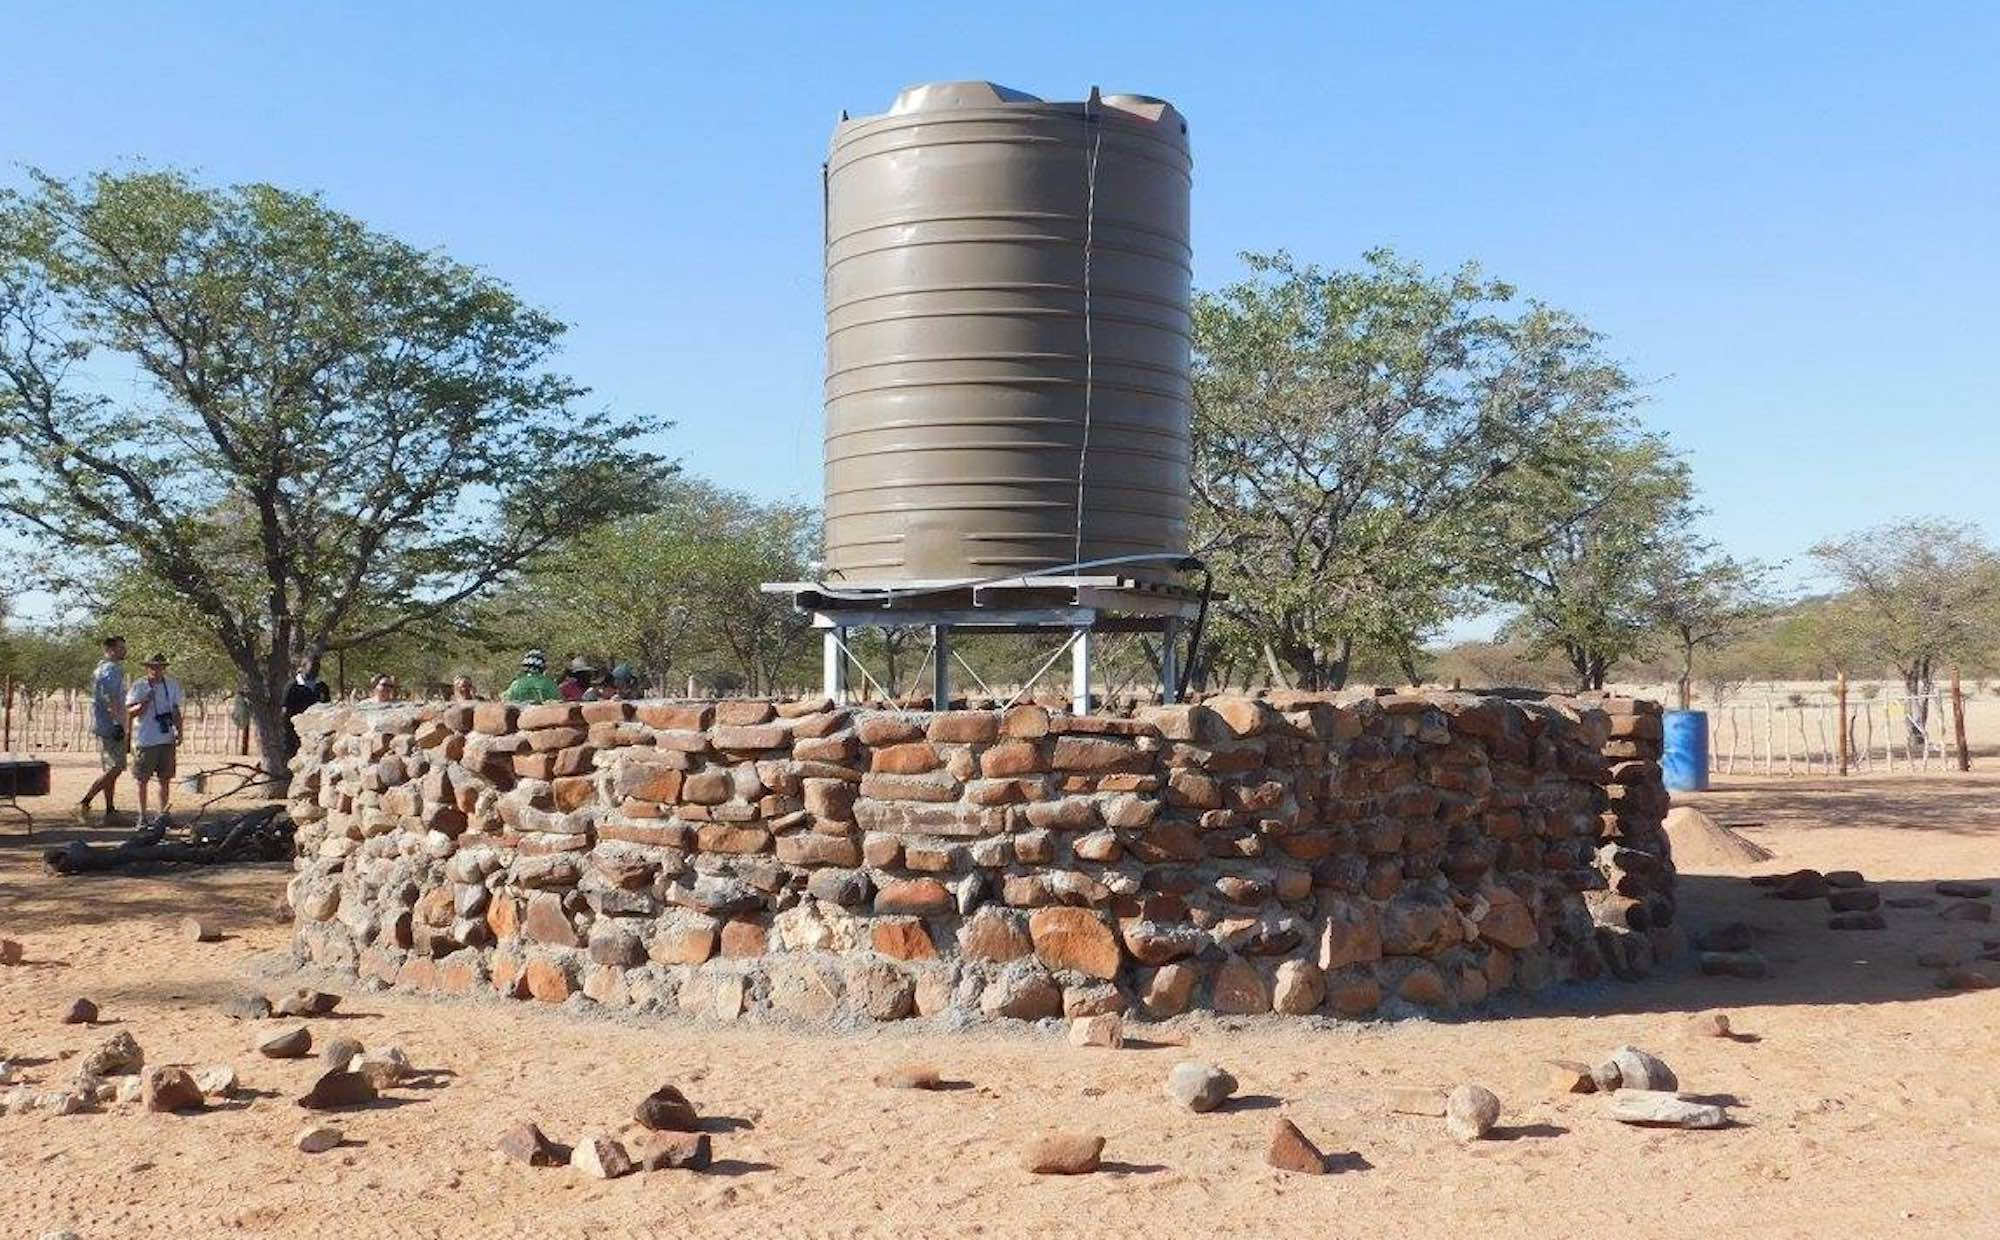 A water tank surrounded by a thick stone wall cemented together.